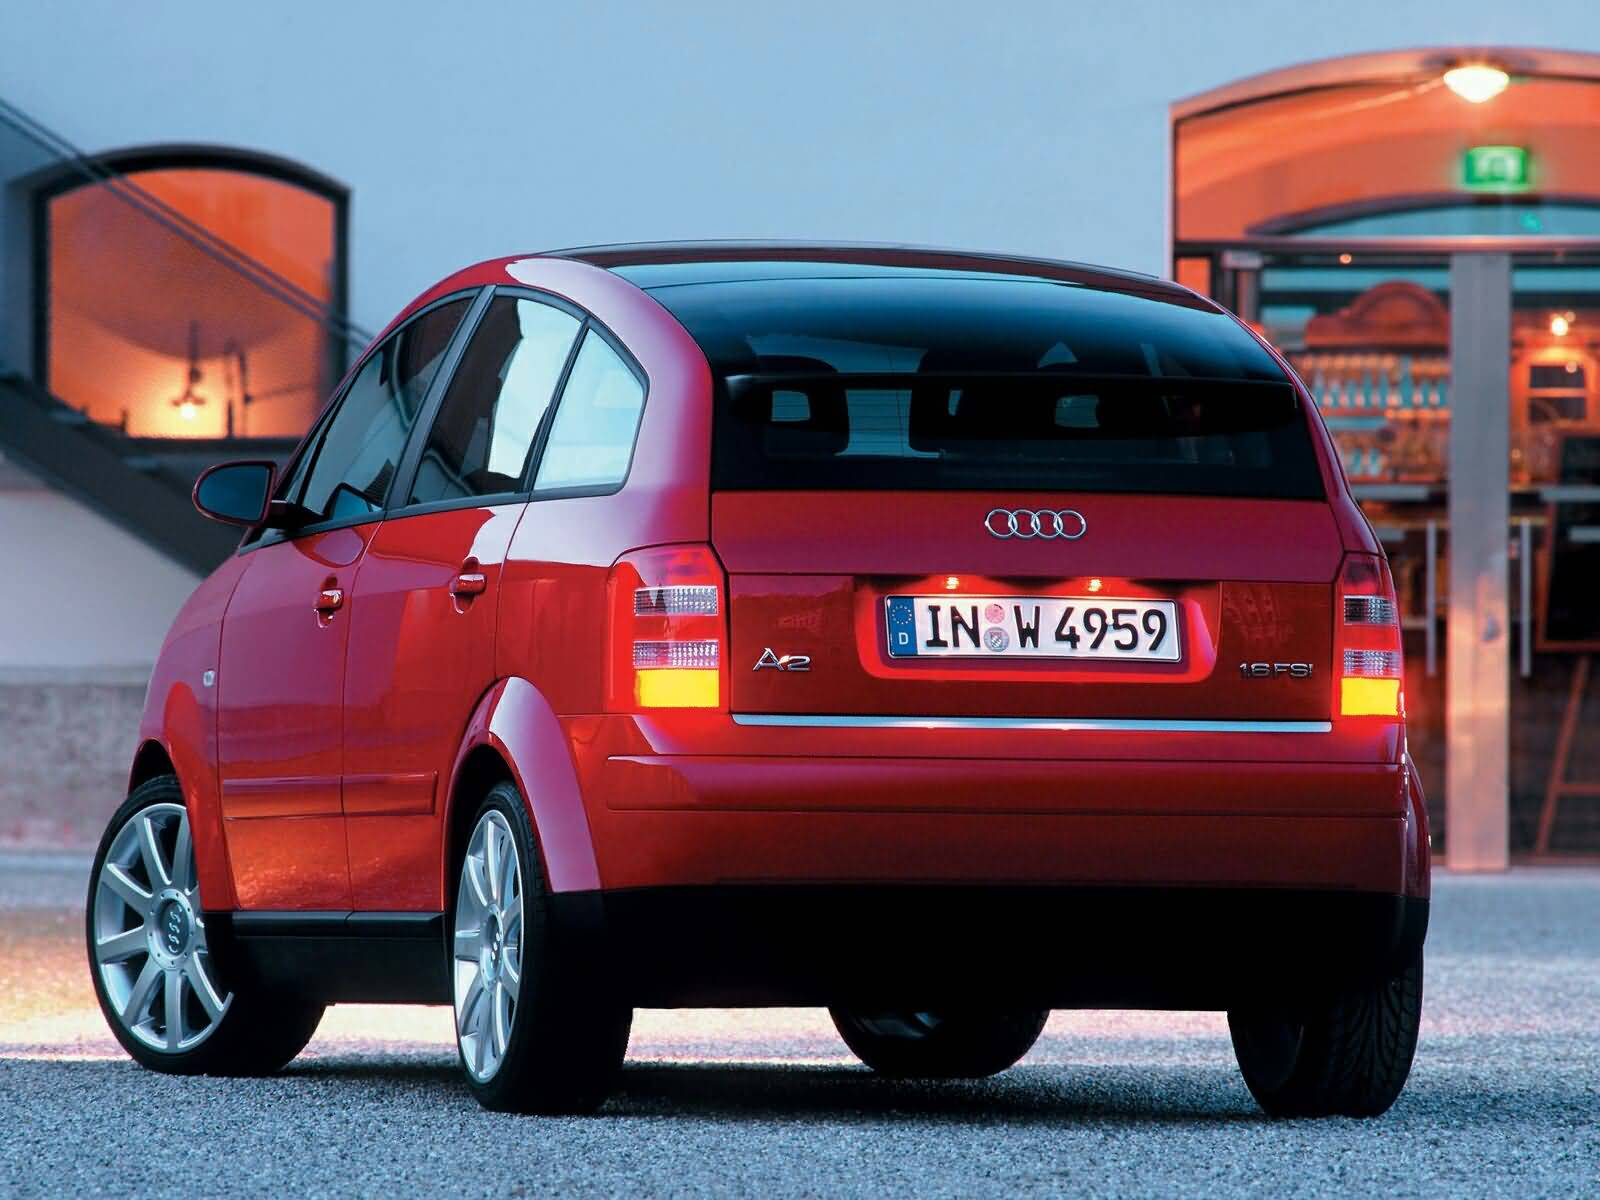 Back side view of lovely Audi A2 Car